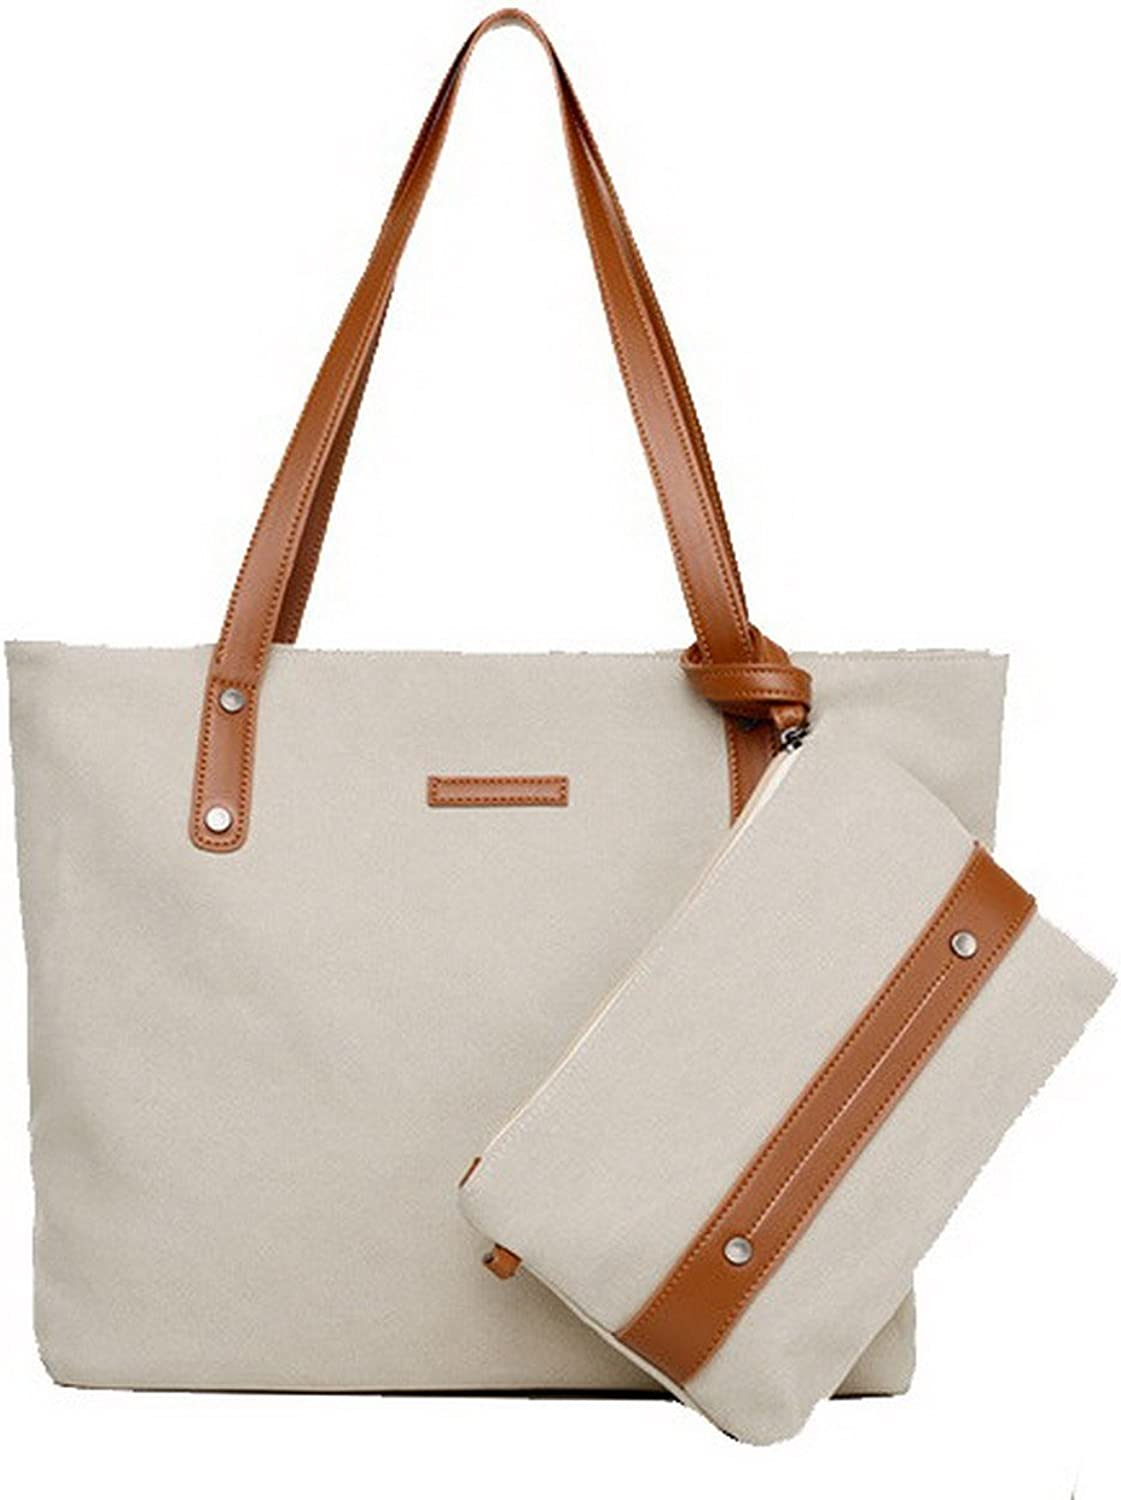 AmoonyFashion Women's Canvas Tote-Style Short Shoulder Bags Tote Bags, BUTBS181374